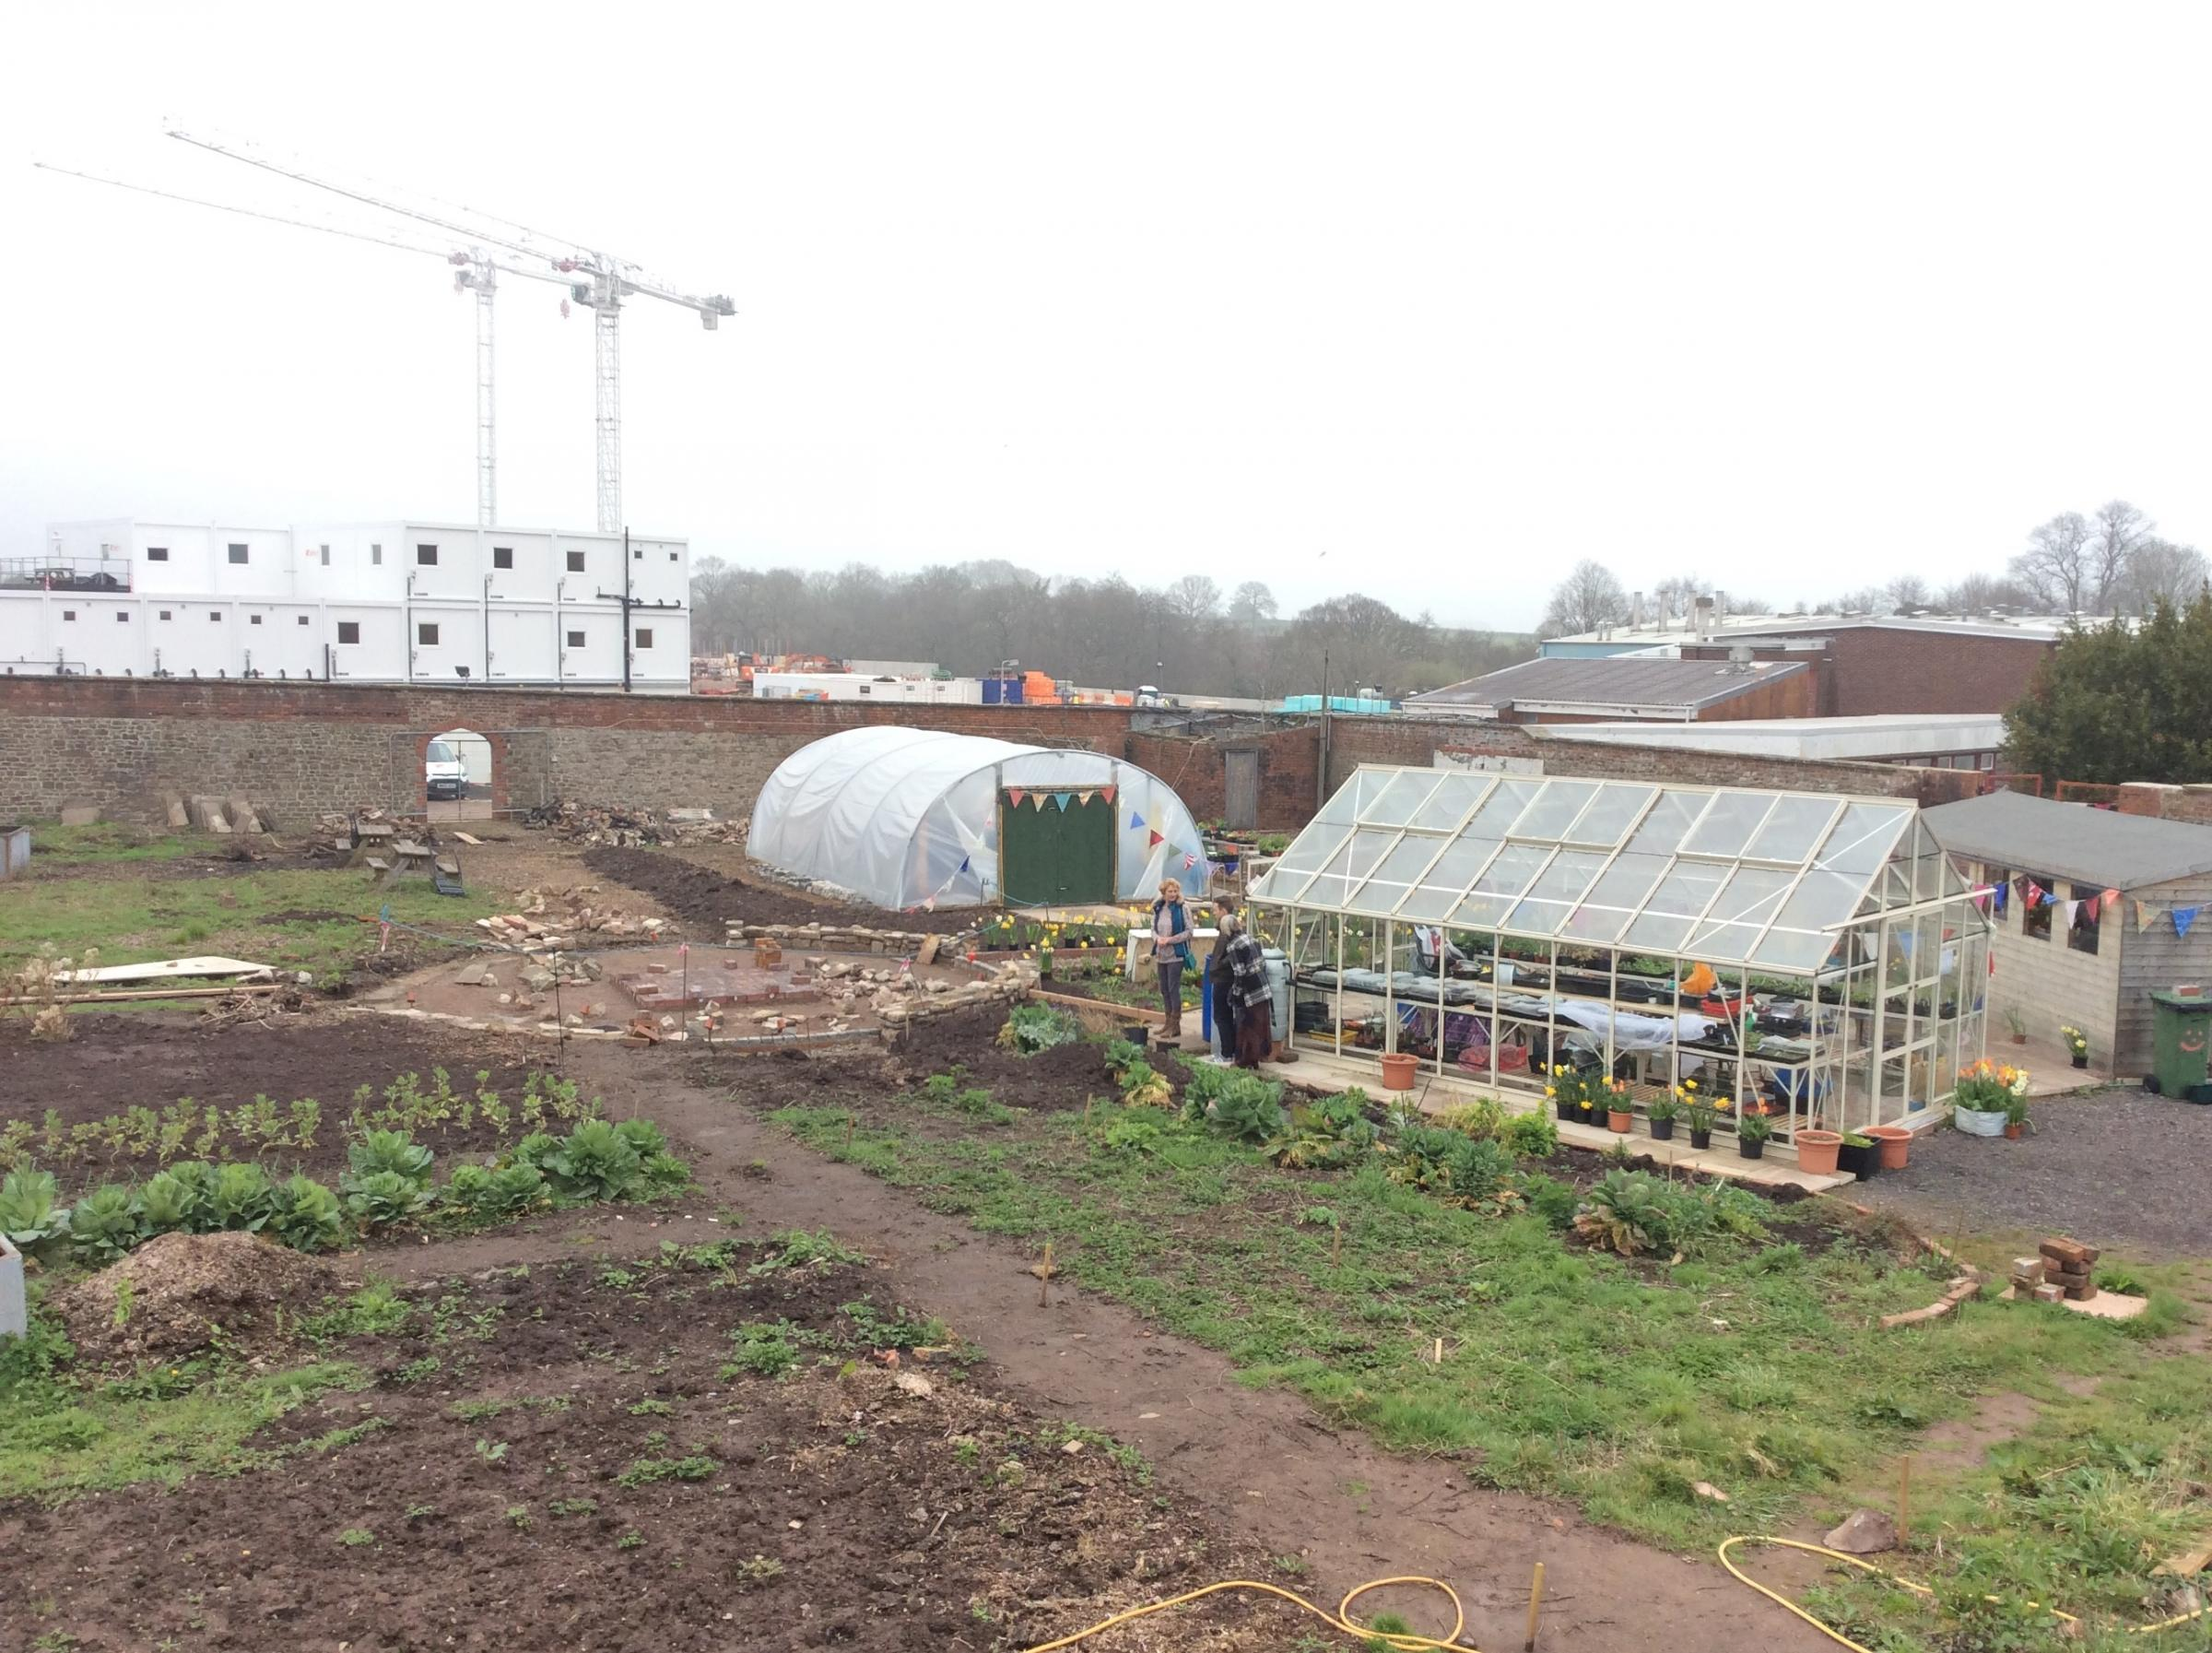 REGENERATION: When finished, the walled garden will provide a space for the public and hospital staff